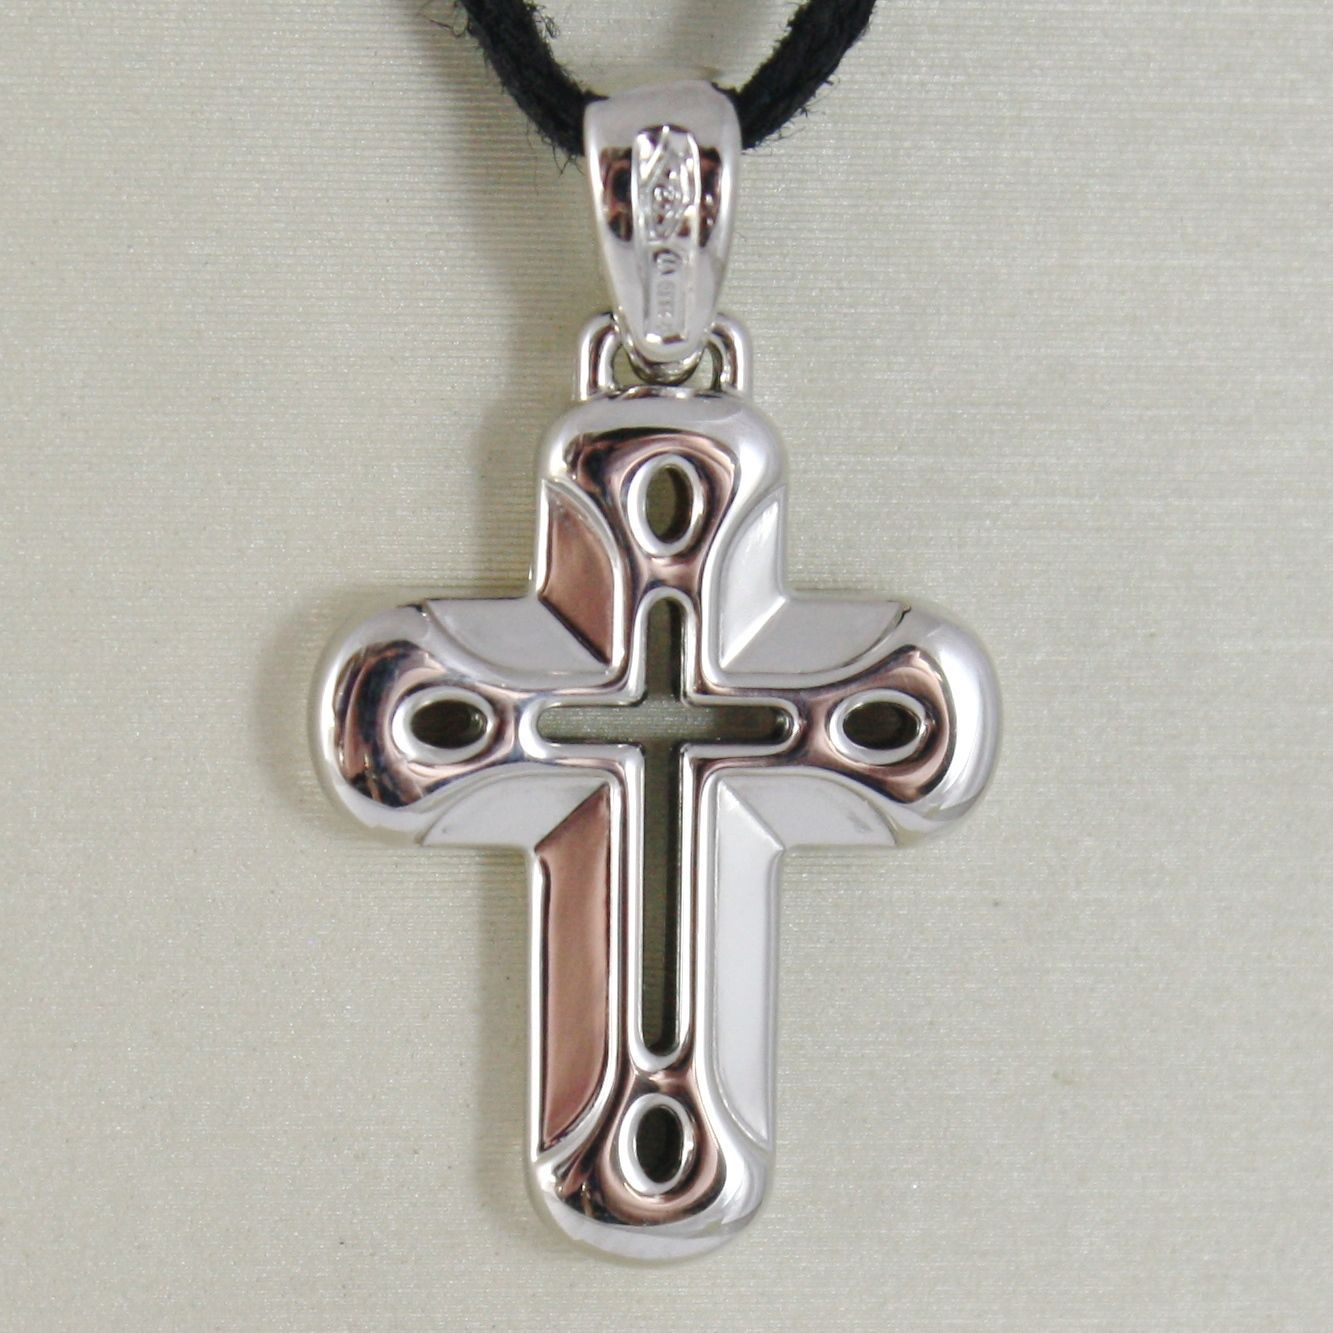 18K WHITE GOLD CROSS VERY SHINY AND LUSTER,  PERFORATED MADE IN ITALY 0.91 IN